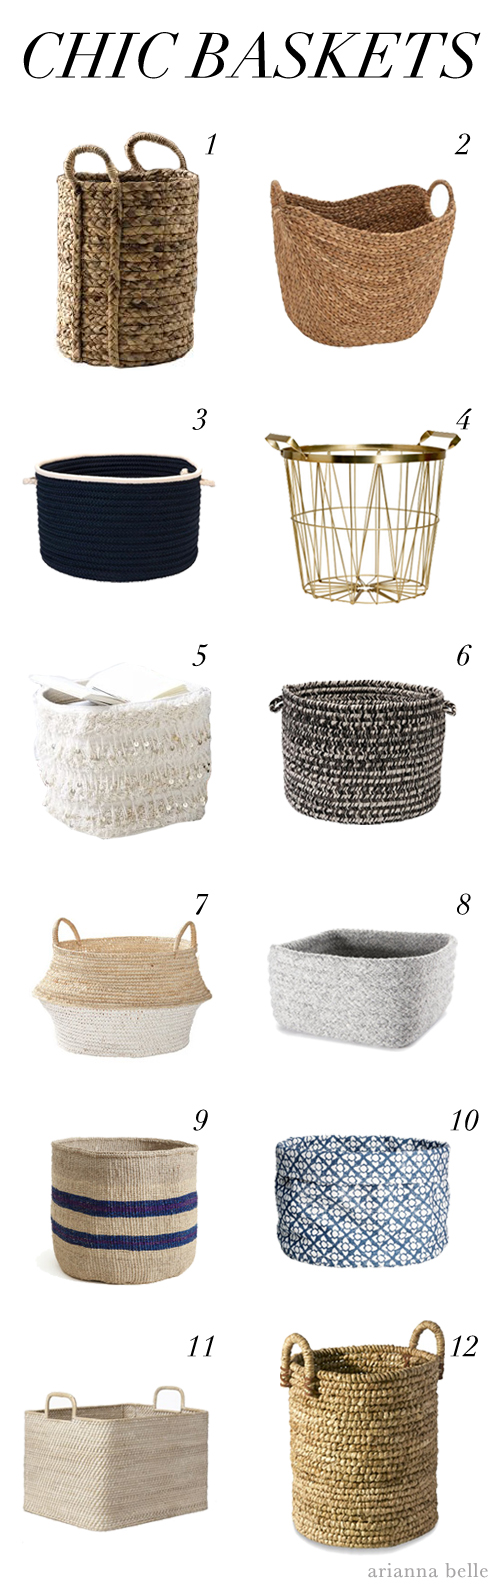 chic-baskets-roundup-arianna-belle-for-LDV